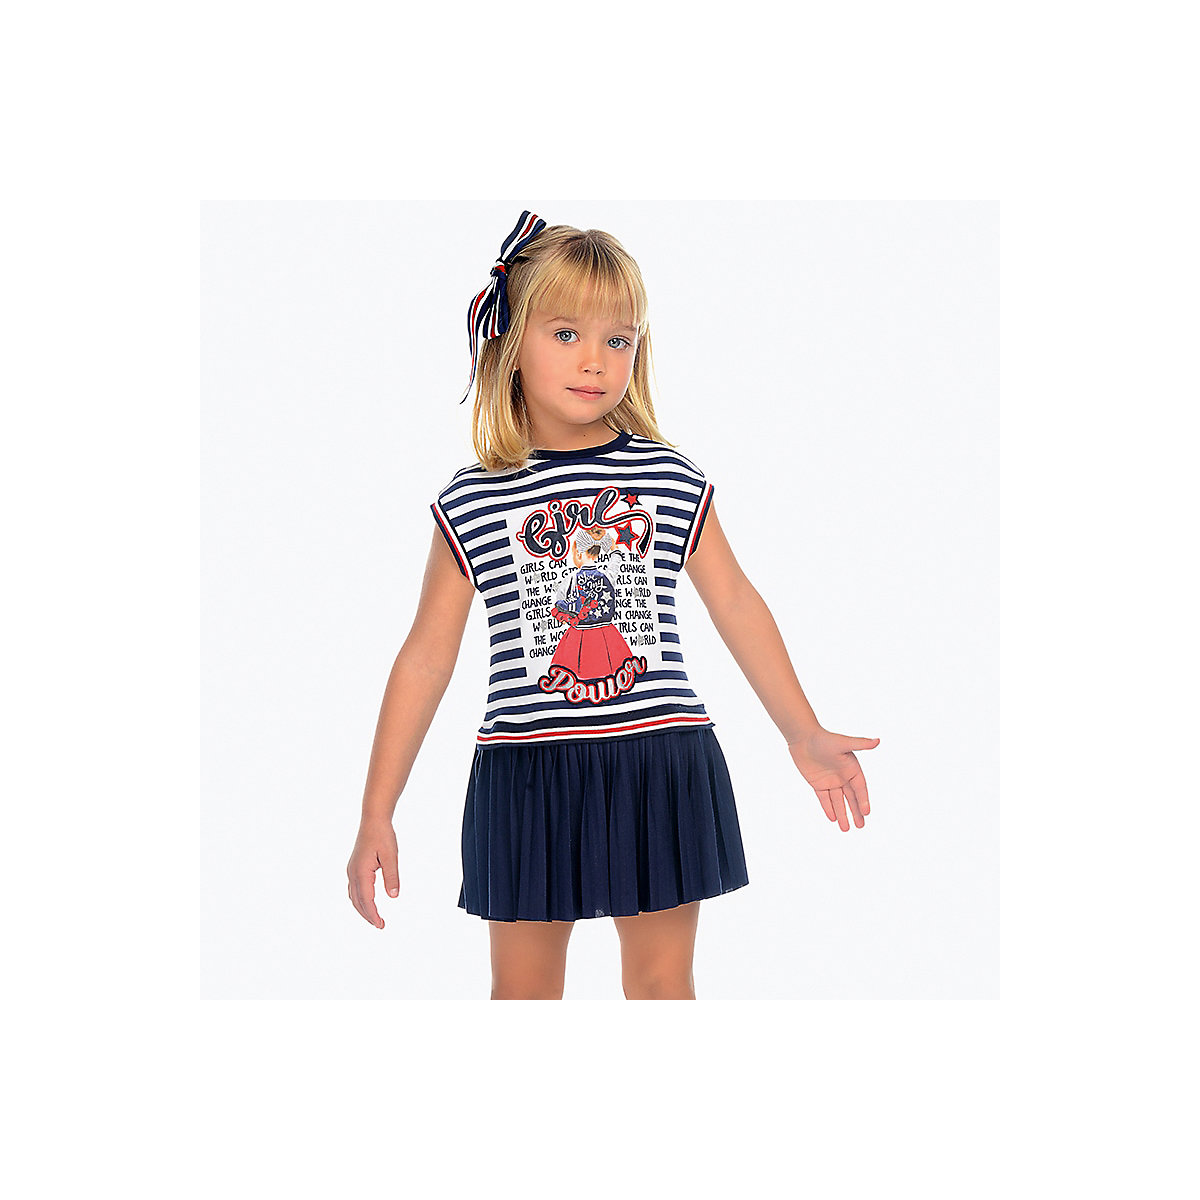 MAYORAL Dresses 10691030 Girl Children fitted pleated skirt Blue Polyester Casual Striped Knee-Length Short Sleeve